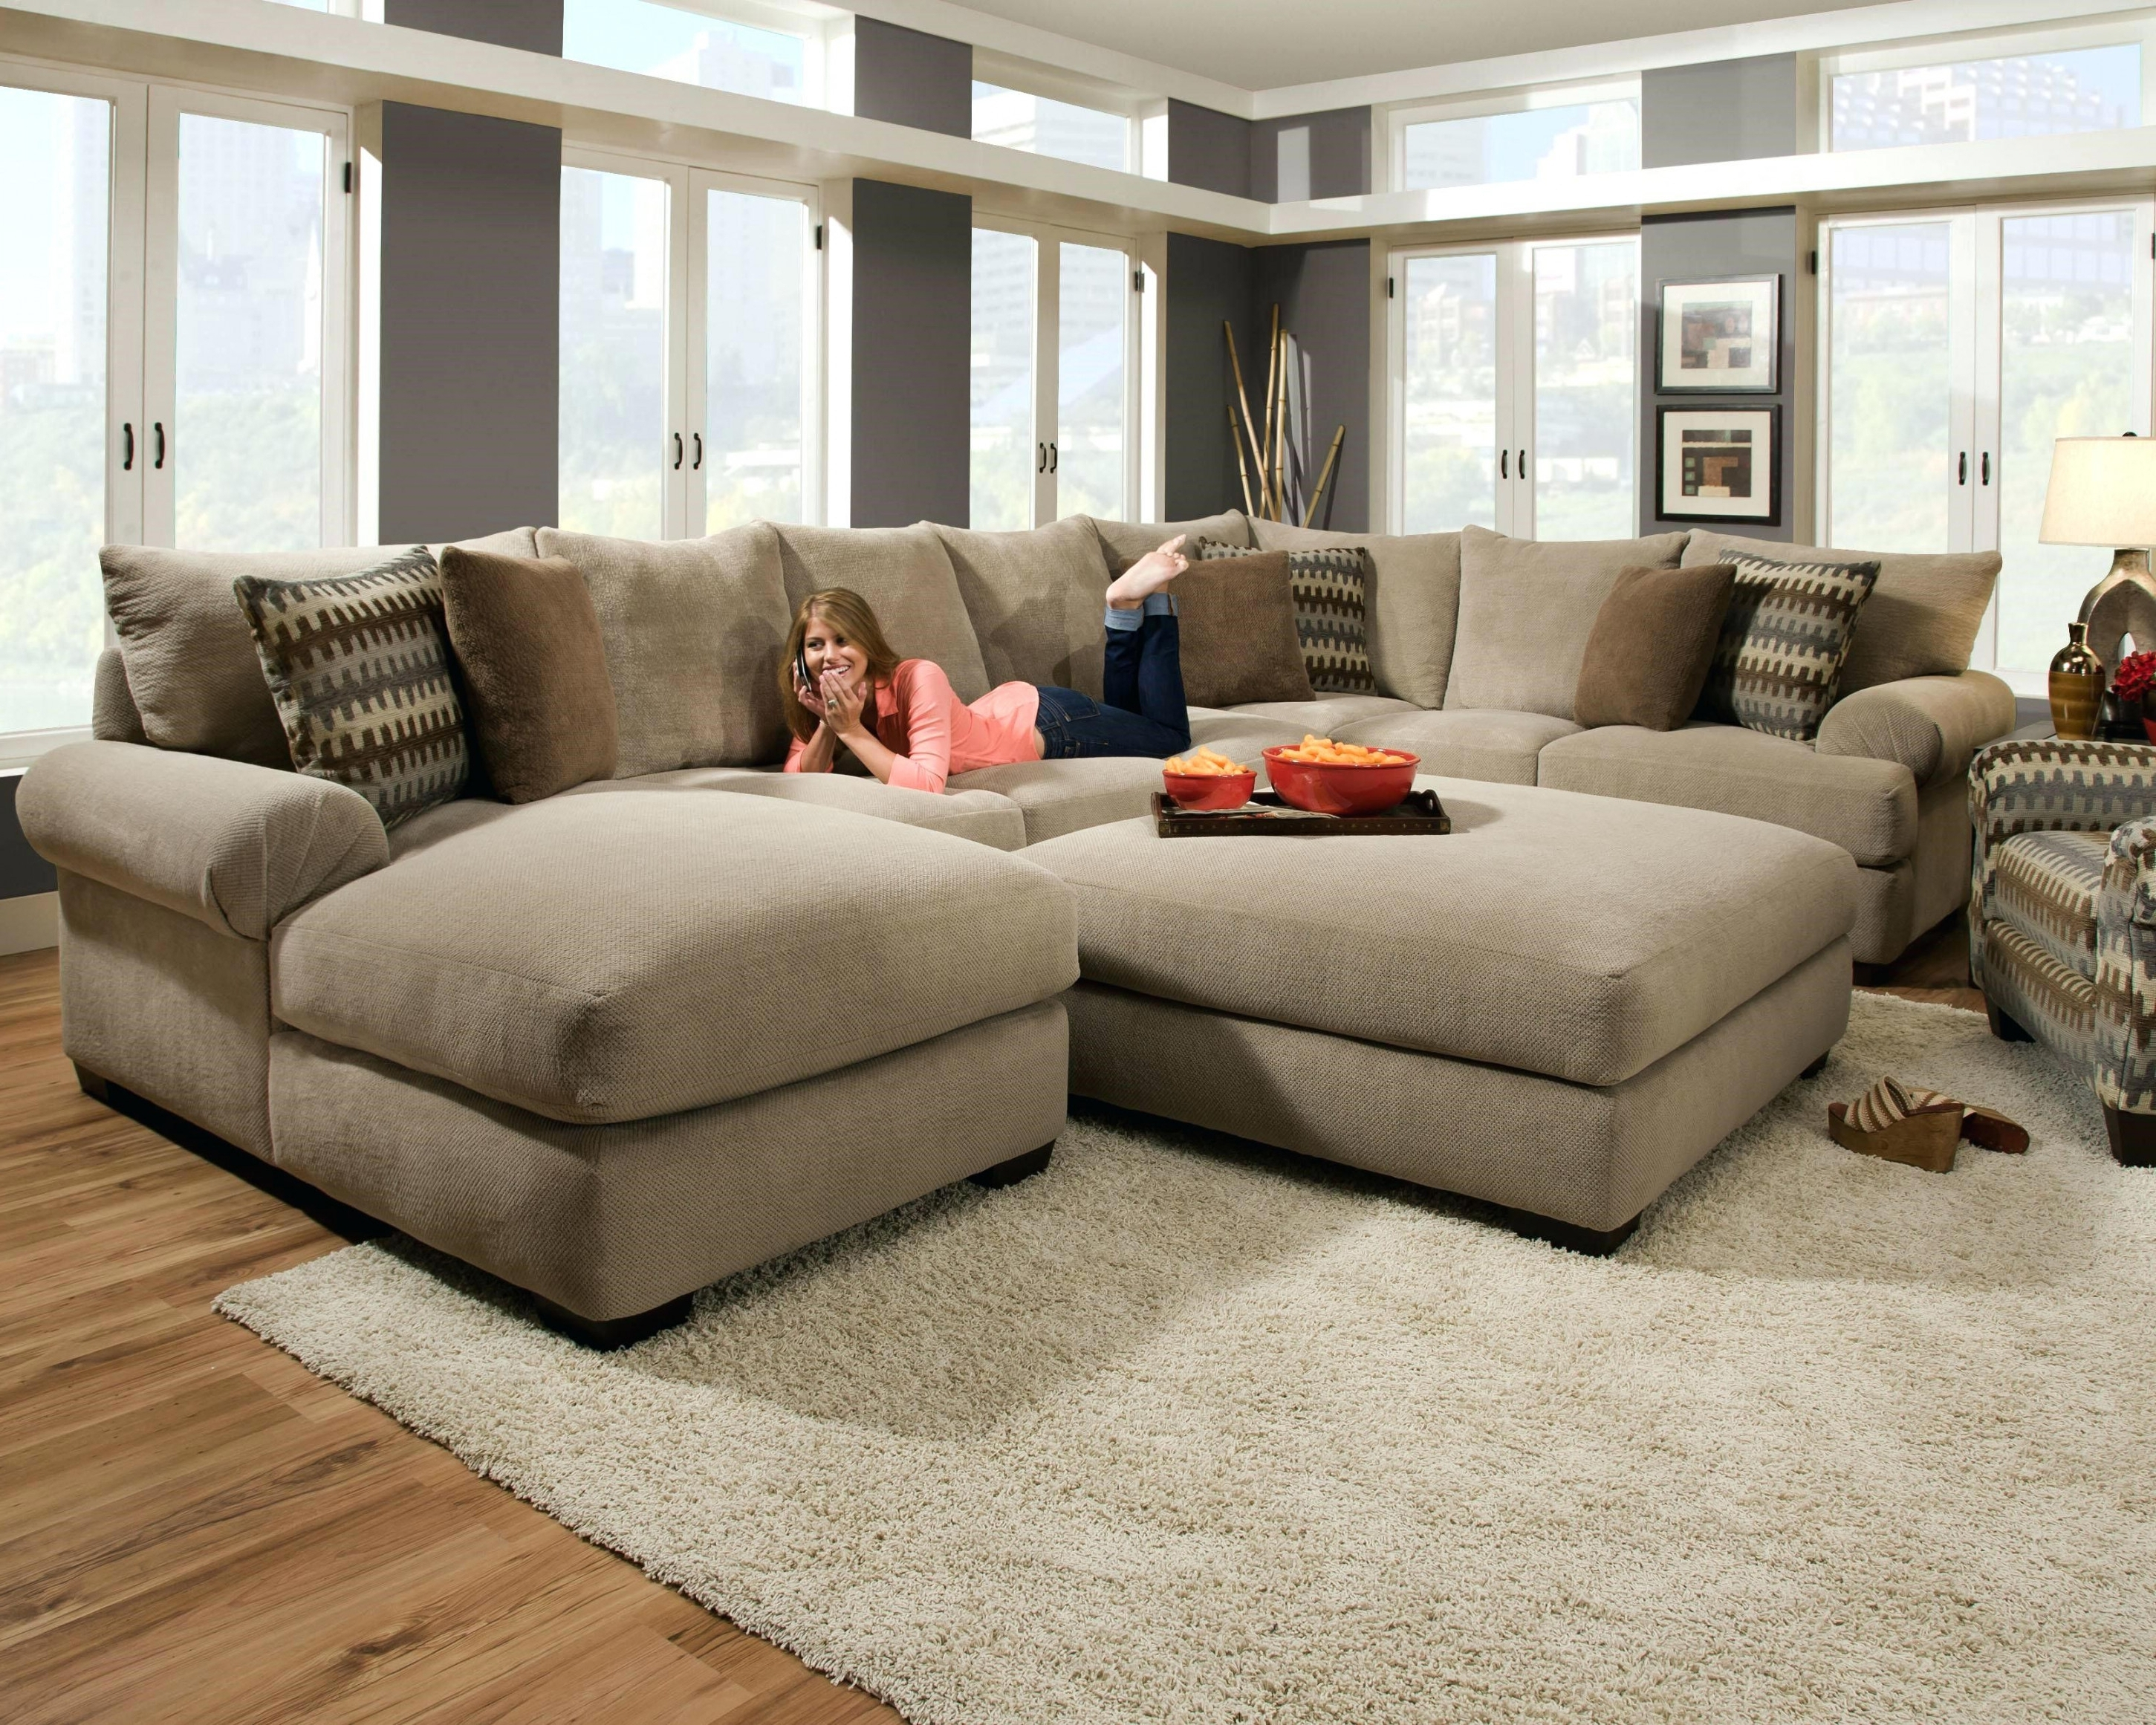 Sectional Sofas Big Lots For Recent Big Lots Sofas (View 15 of 15)